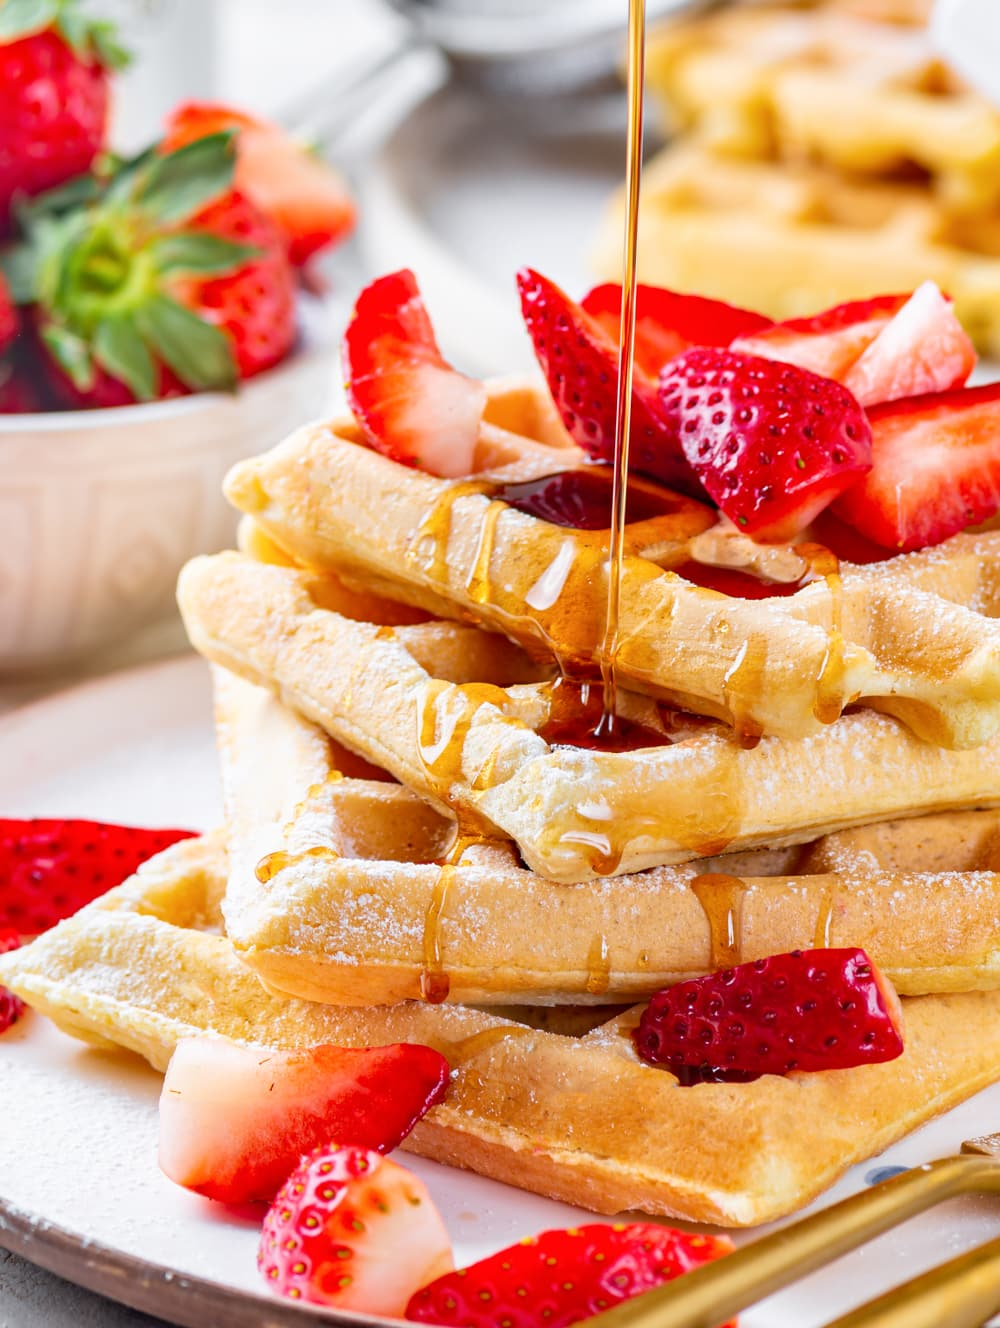 Four square vegan waffles unevenly stacked on top of one another with strawberries on them. Maple syrup is being poured on the waffles from the top. Part of a white bowl of strawberries and two vegan waffles are in the background.